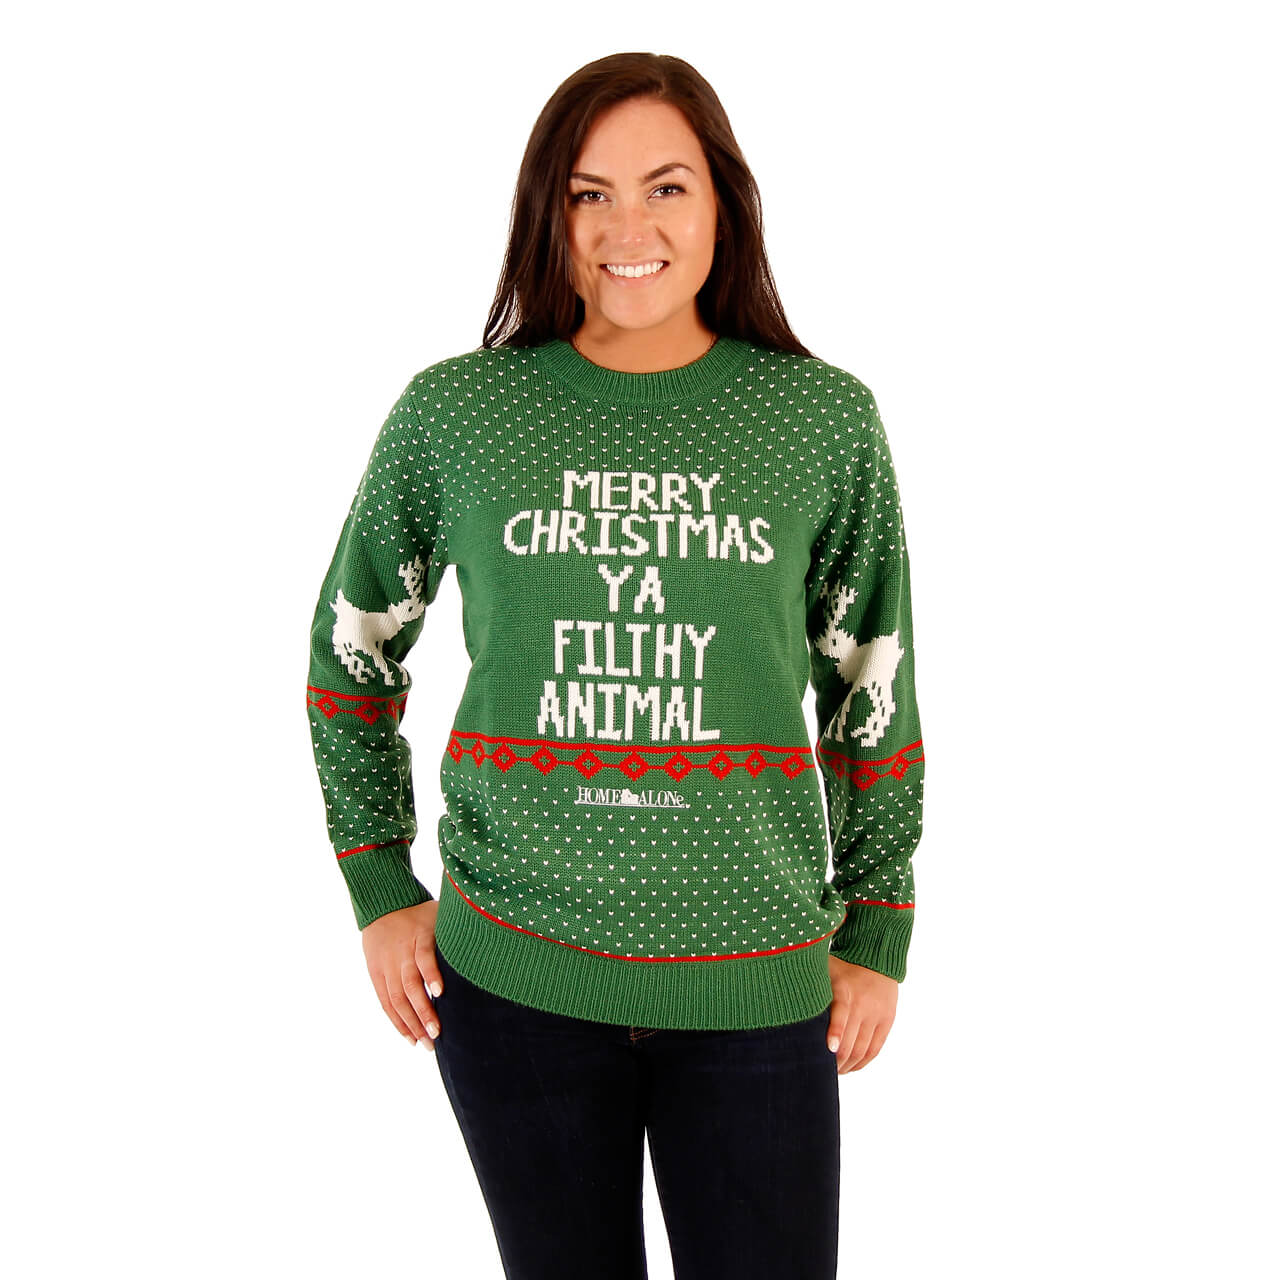 womens green home alone merry christmas ya filthy animal sweater - Merry Christmas Ya Filthy Animal